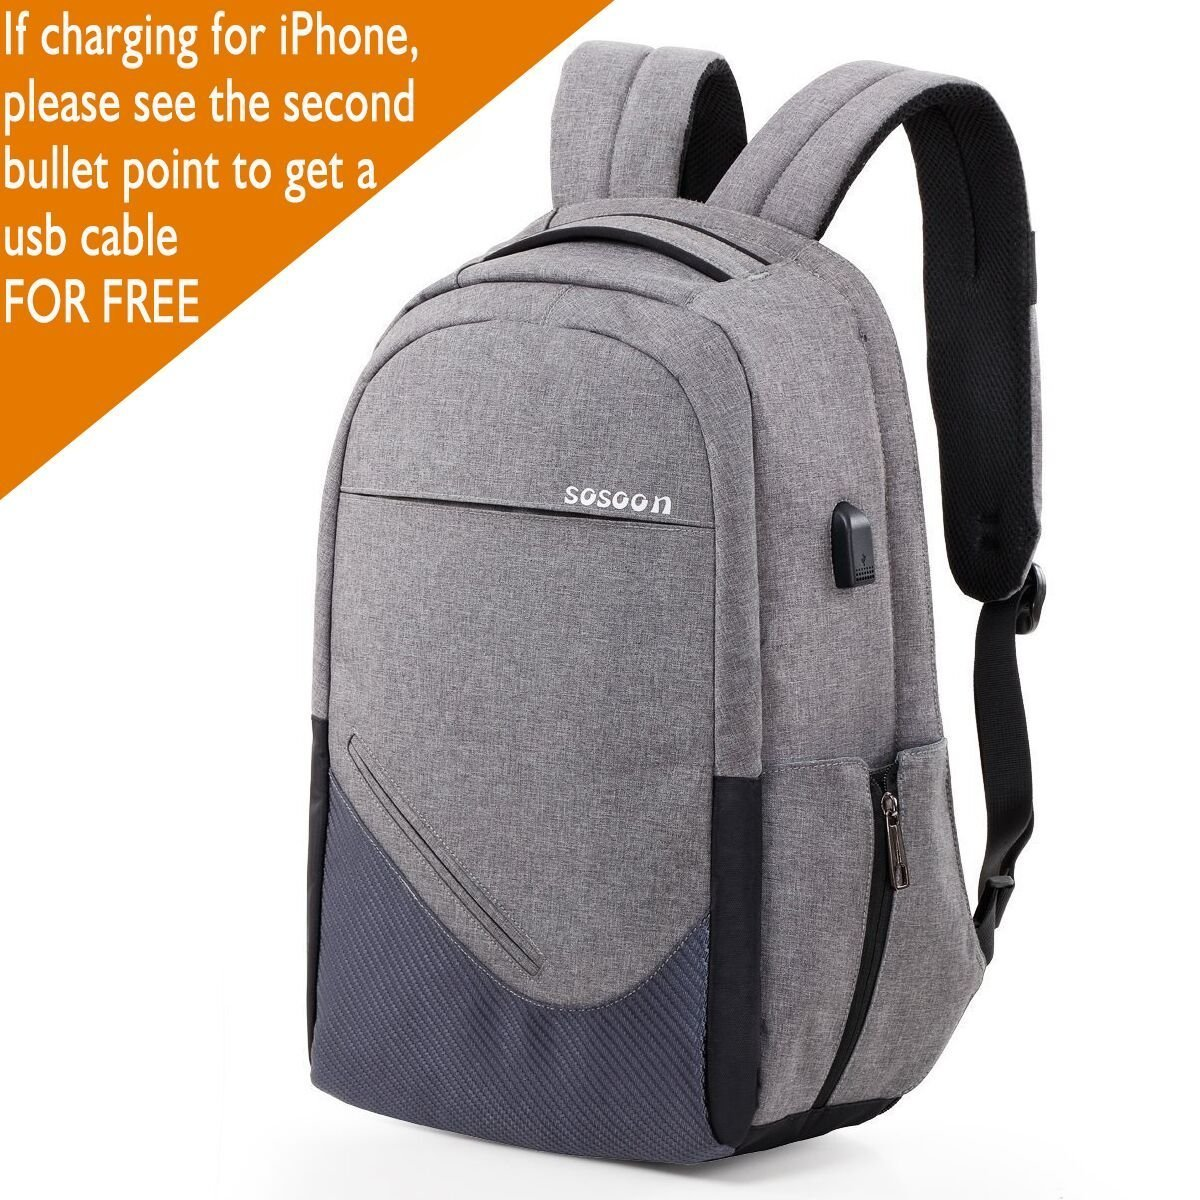 60%OFF Sosoon Laptop Backpack, Business Bags with USB Charging Port Anti-Theft Water Resistant Polyester School Bookbag for College Travel Backpack for 15.6-Inch Laptop and Notebook, Gray